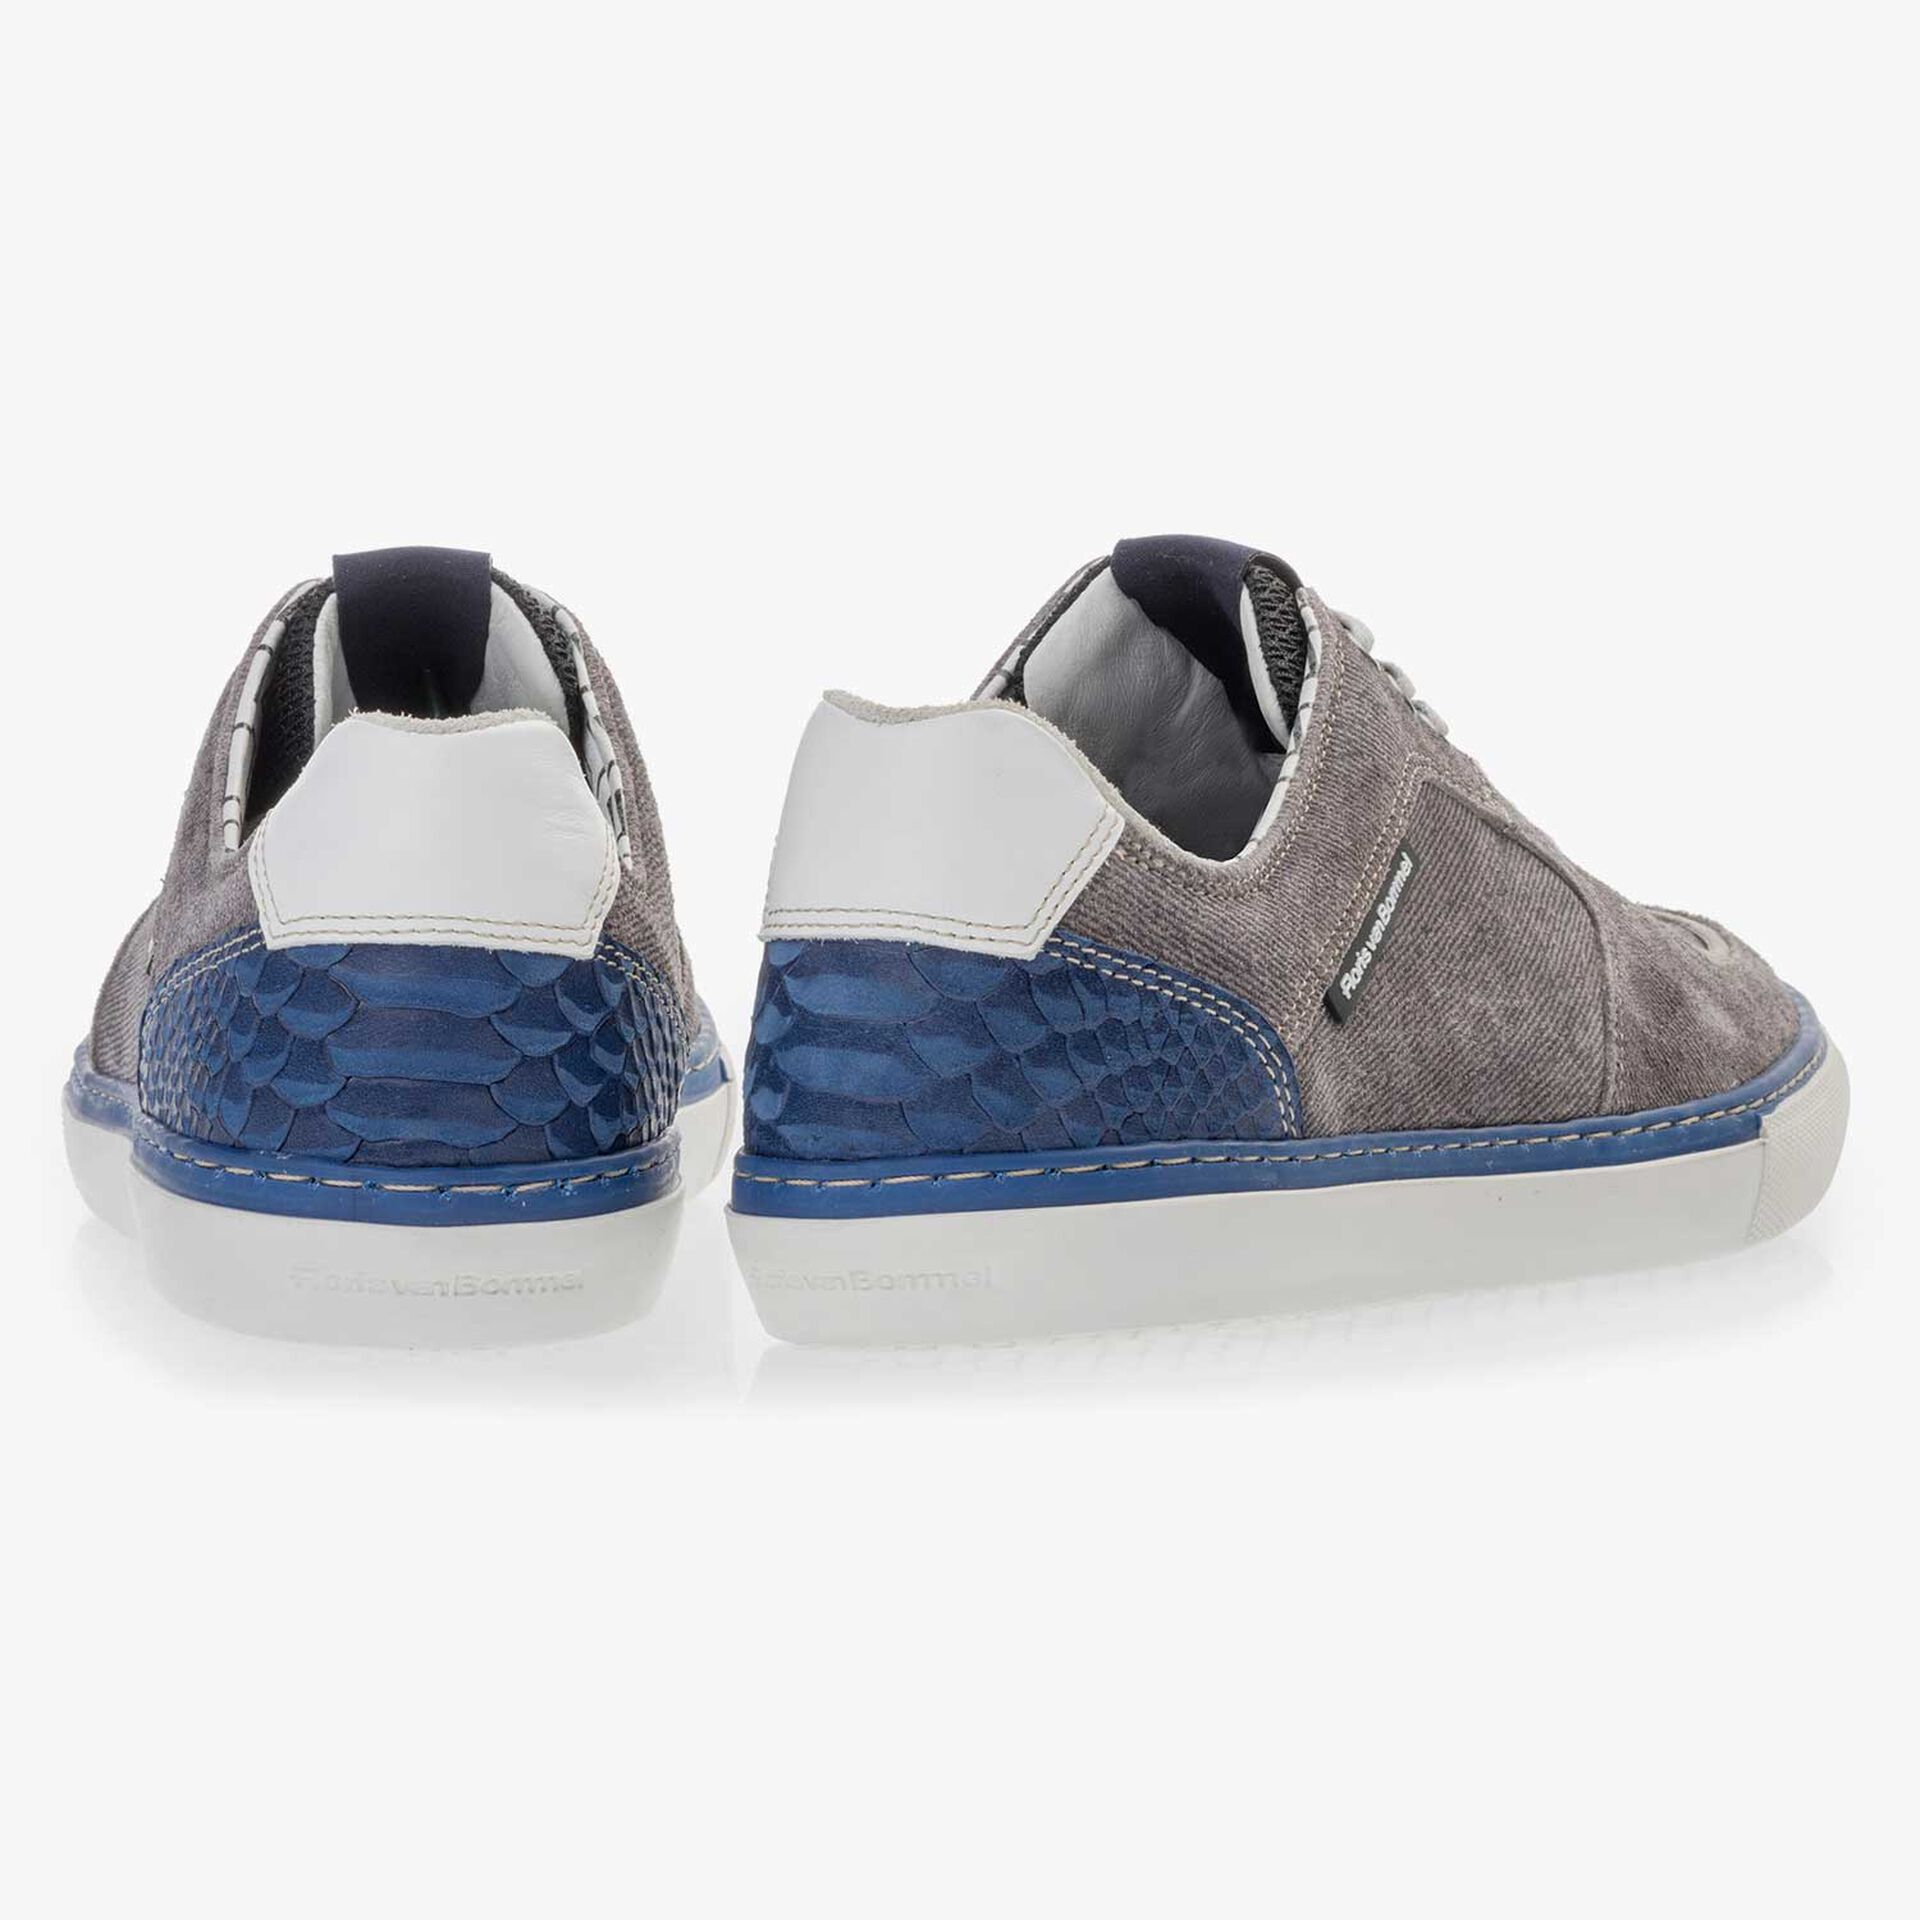 Grey patterned suede leather sneaker